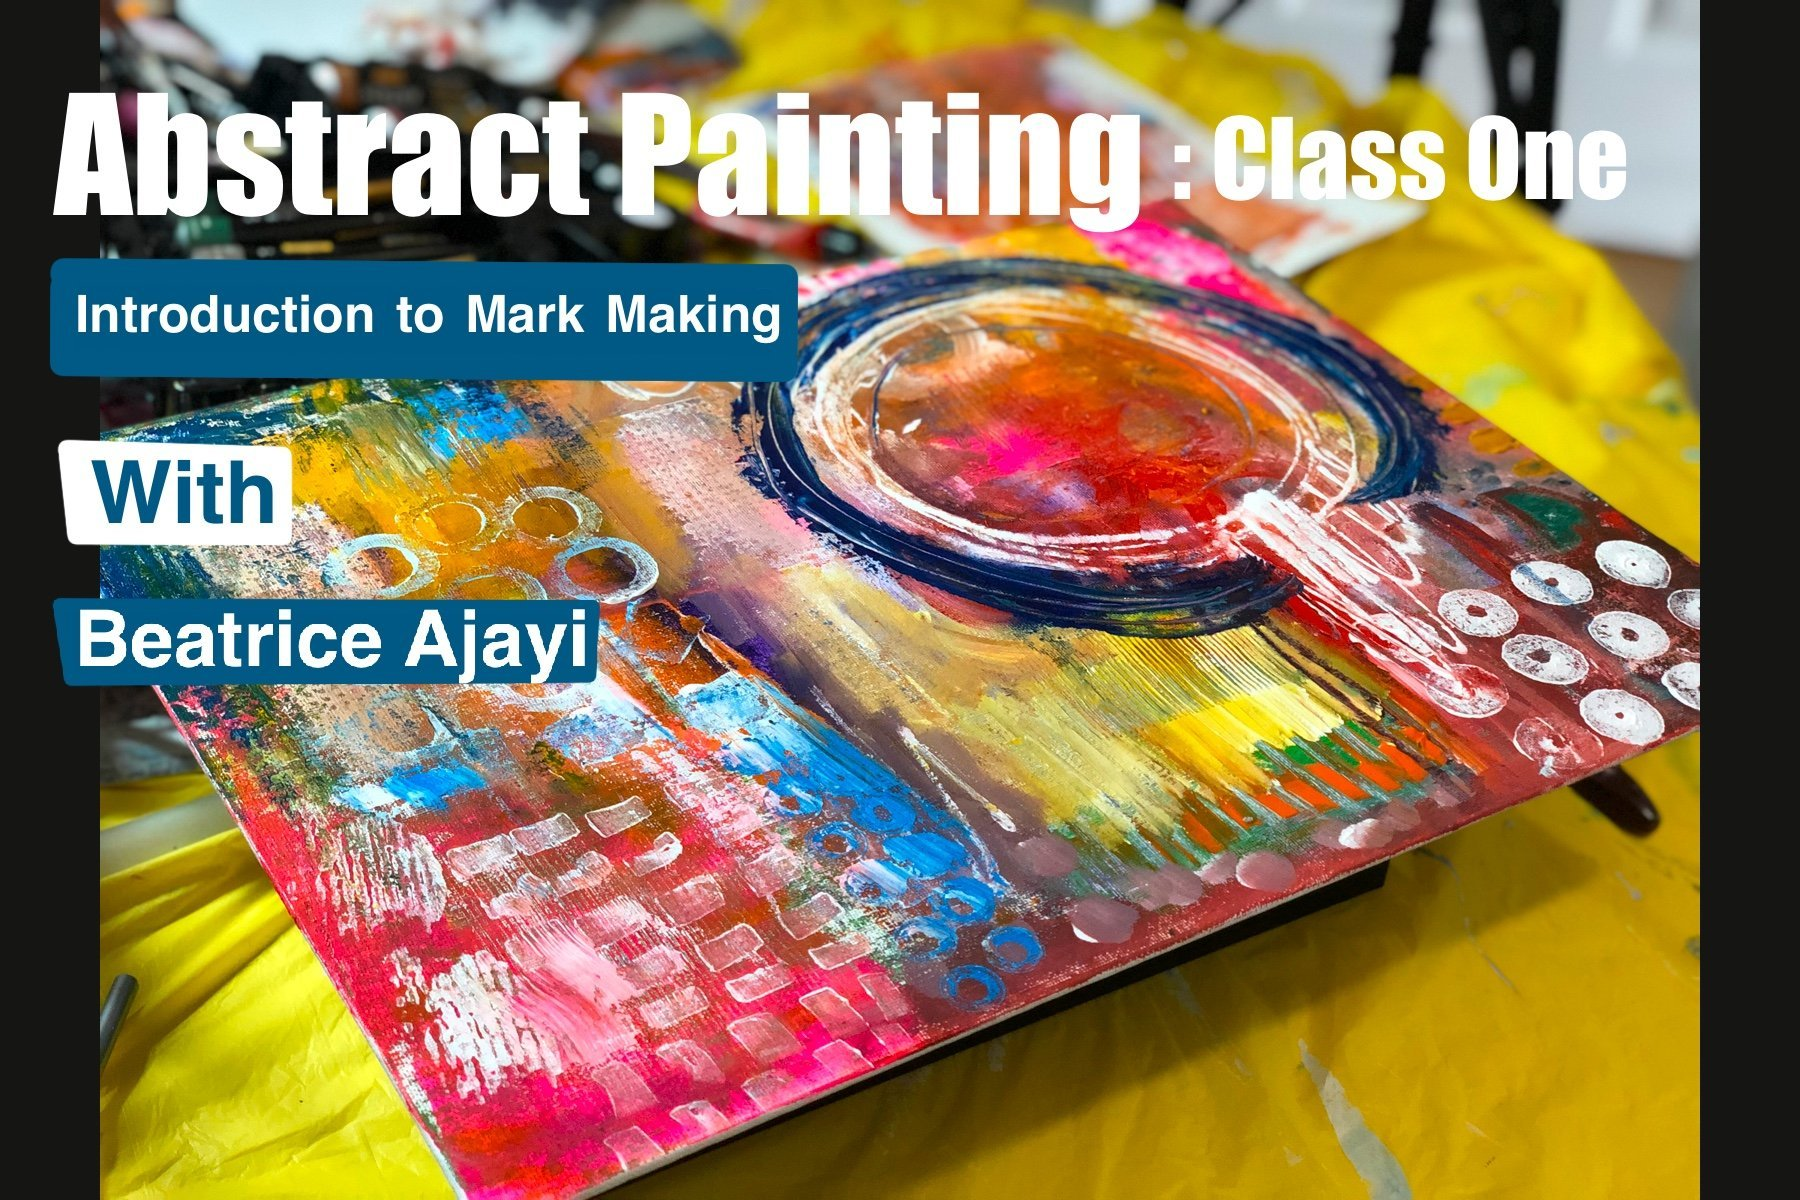 Abstract Painting : Class One - Introduction into Mark Making